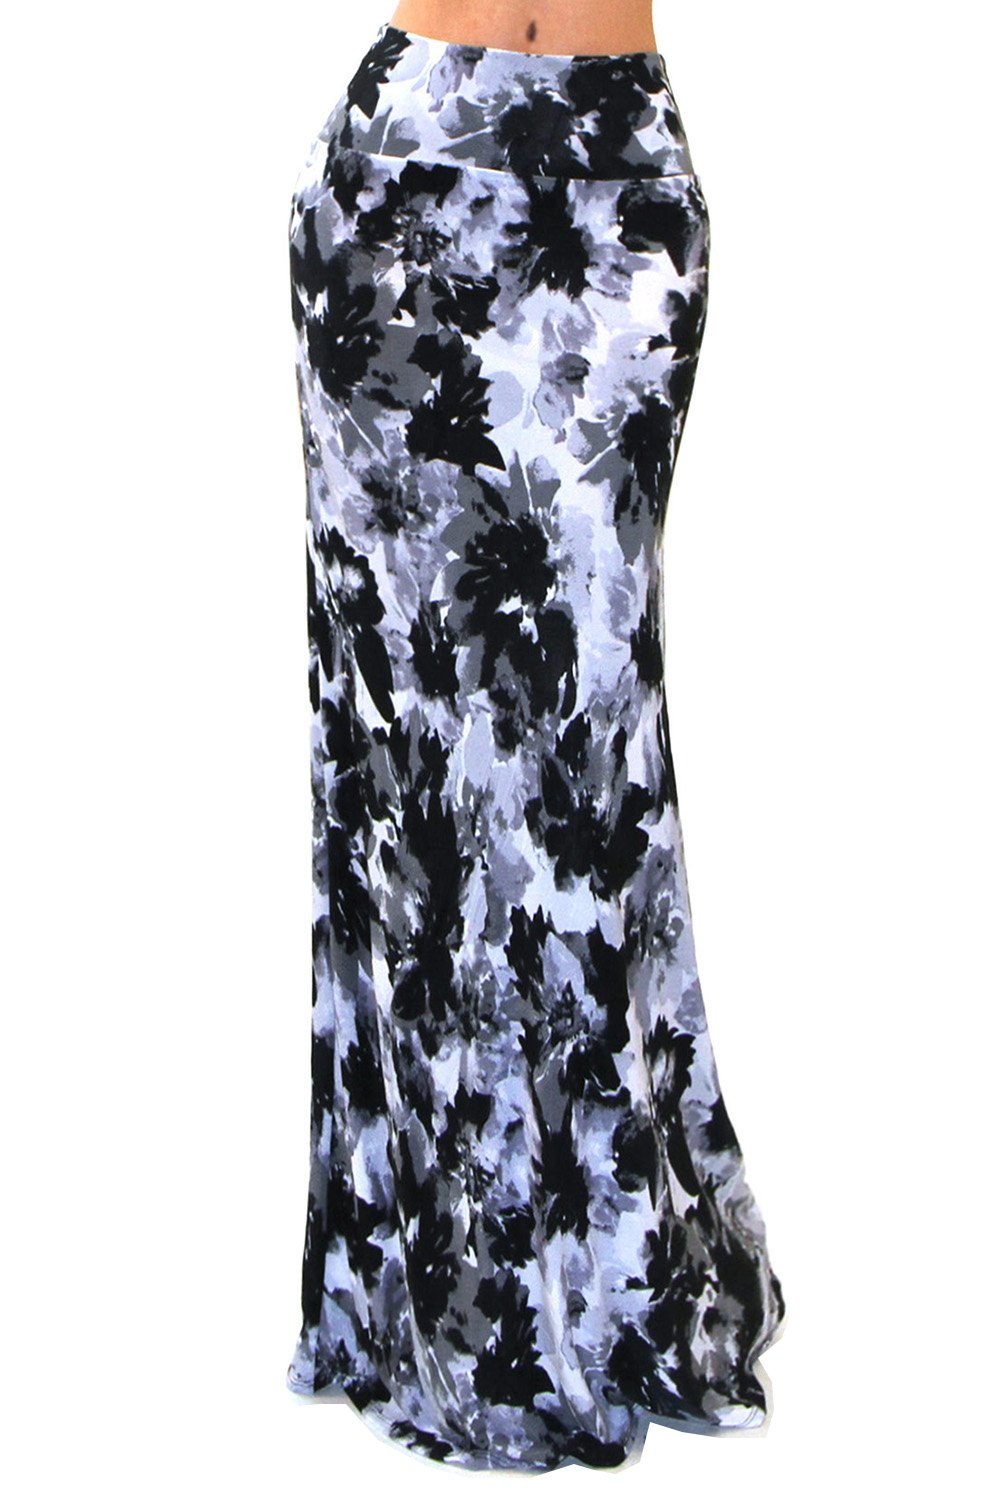 VIVICASTLE Women's Colorful Printed Fold Over Waist Long Maxi Skirt (Large, AE42, blk/gray)